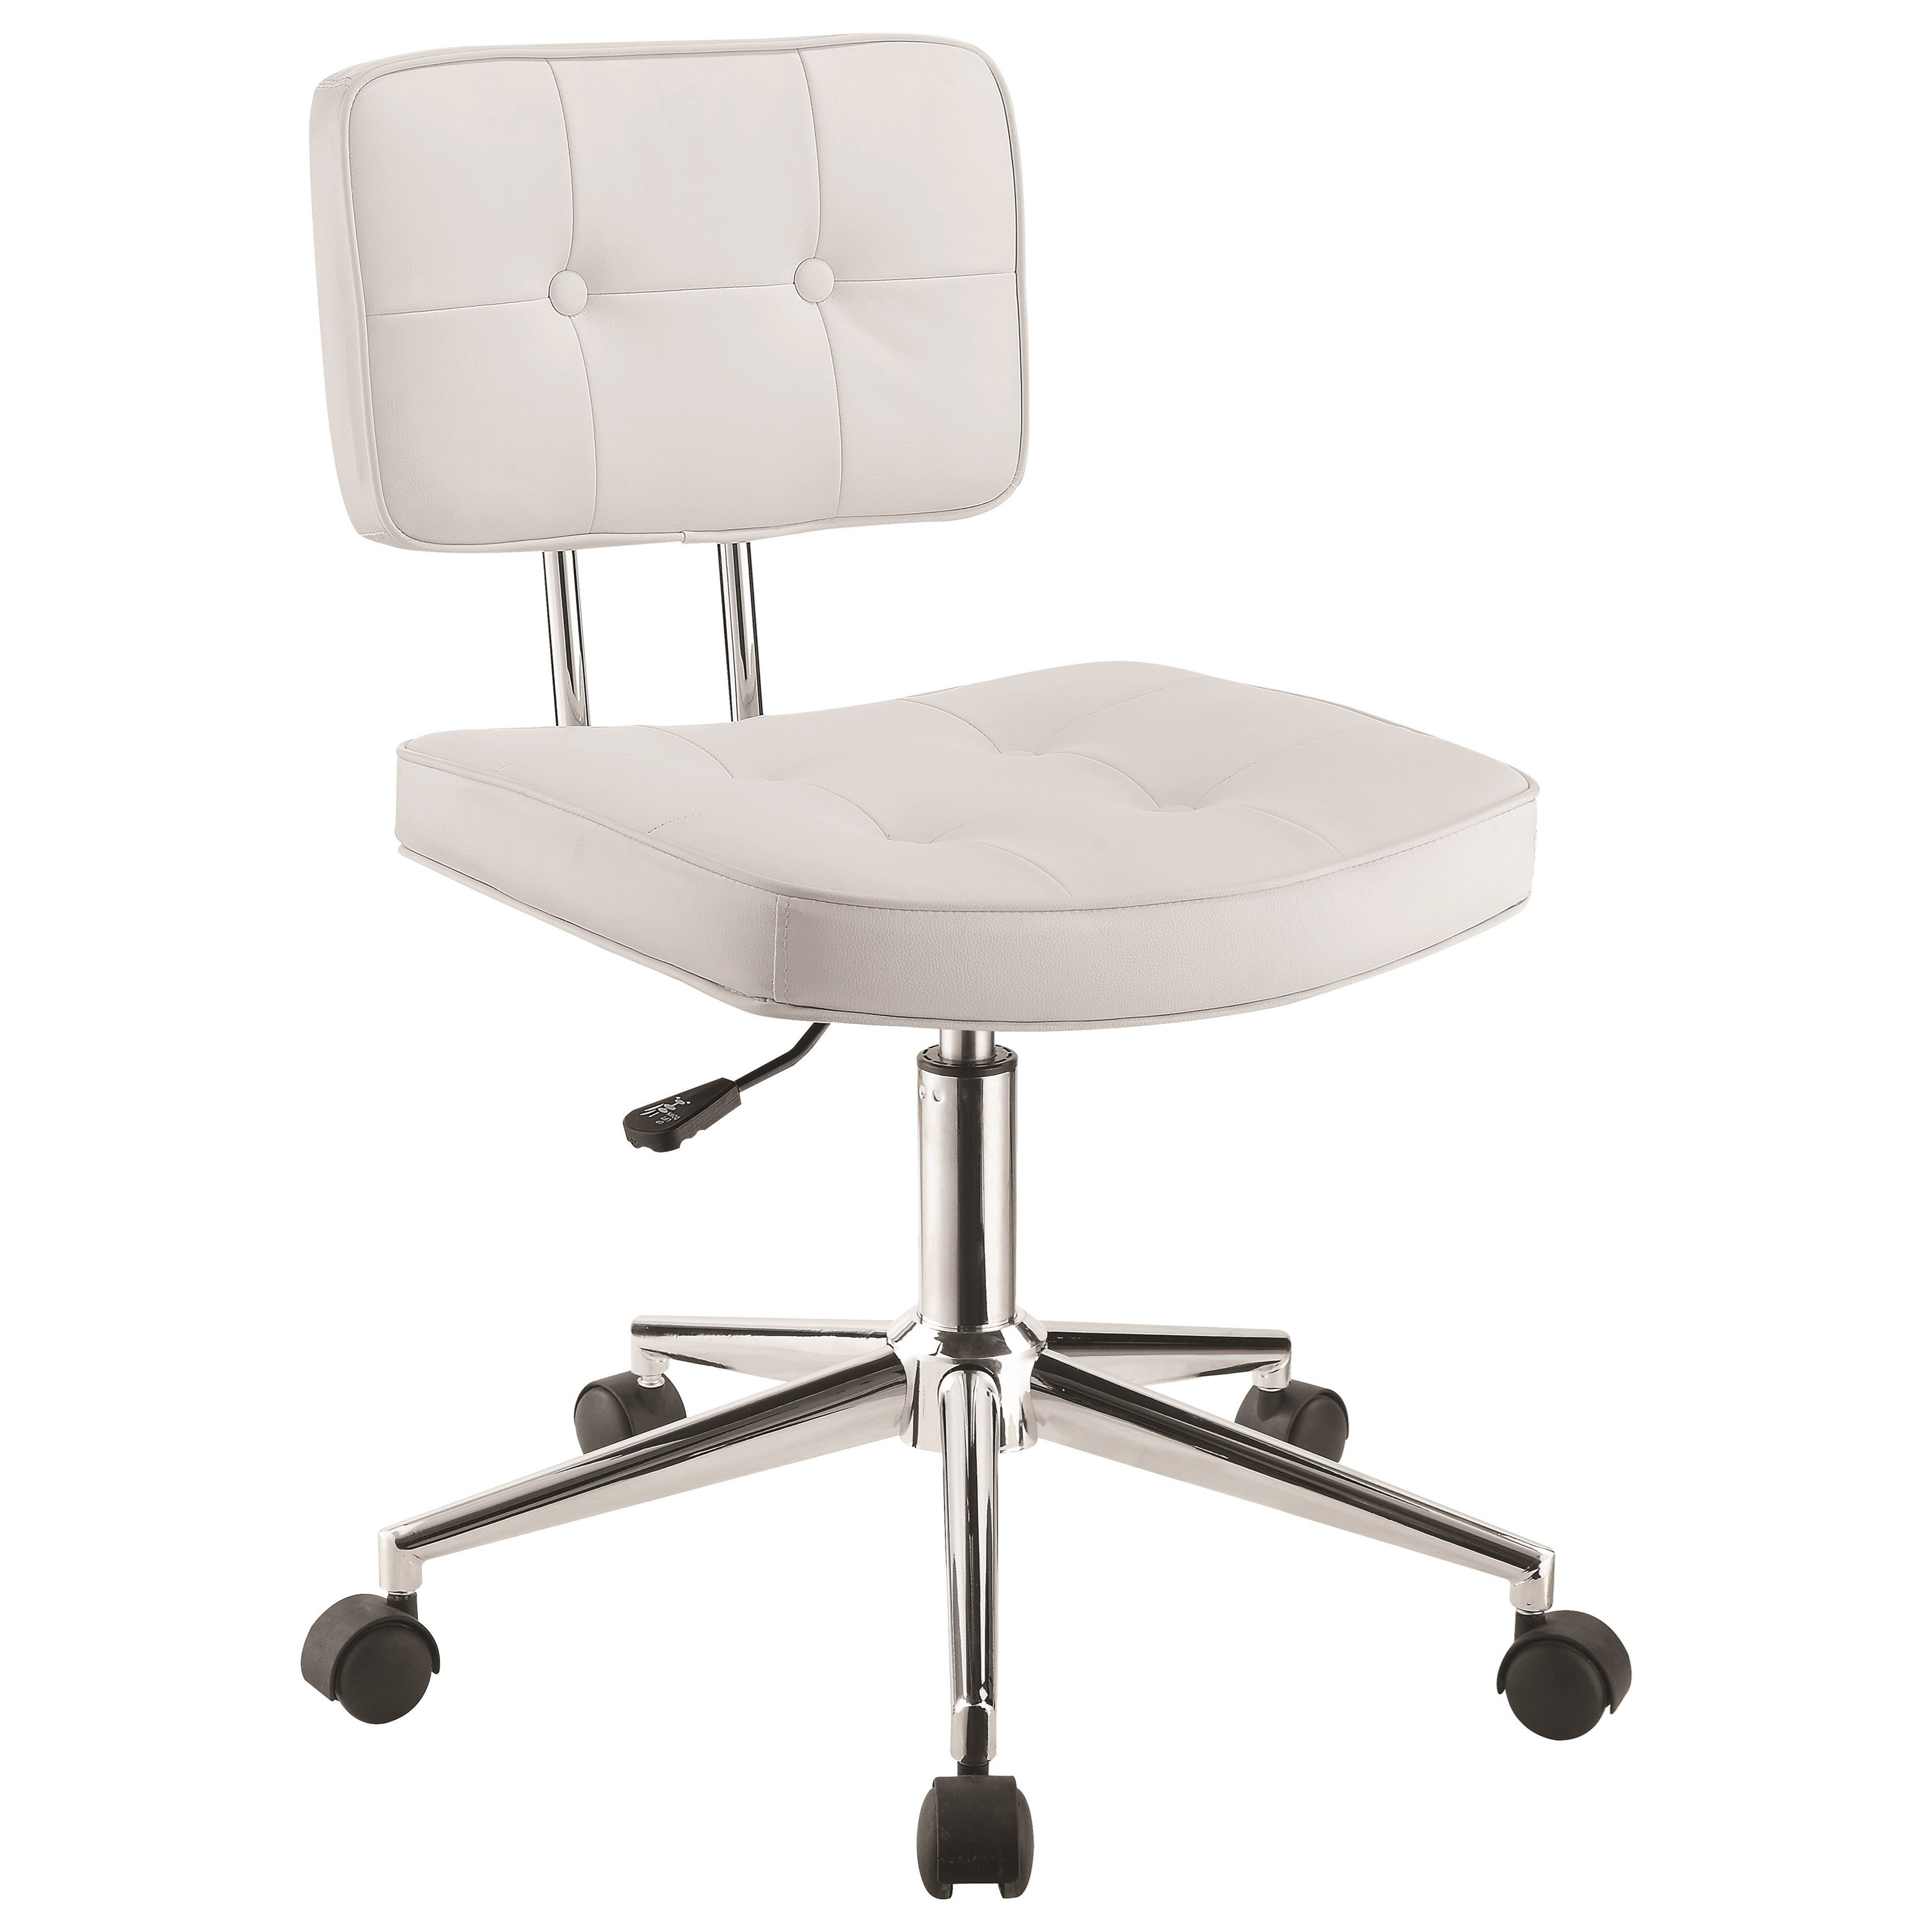 Scott Living 80128 Office Chair - Item Number: 802289